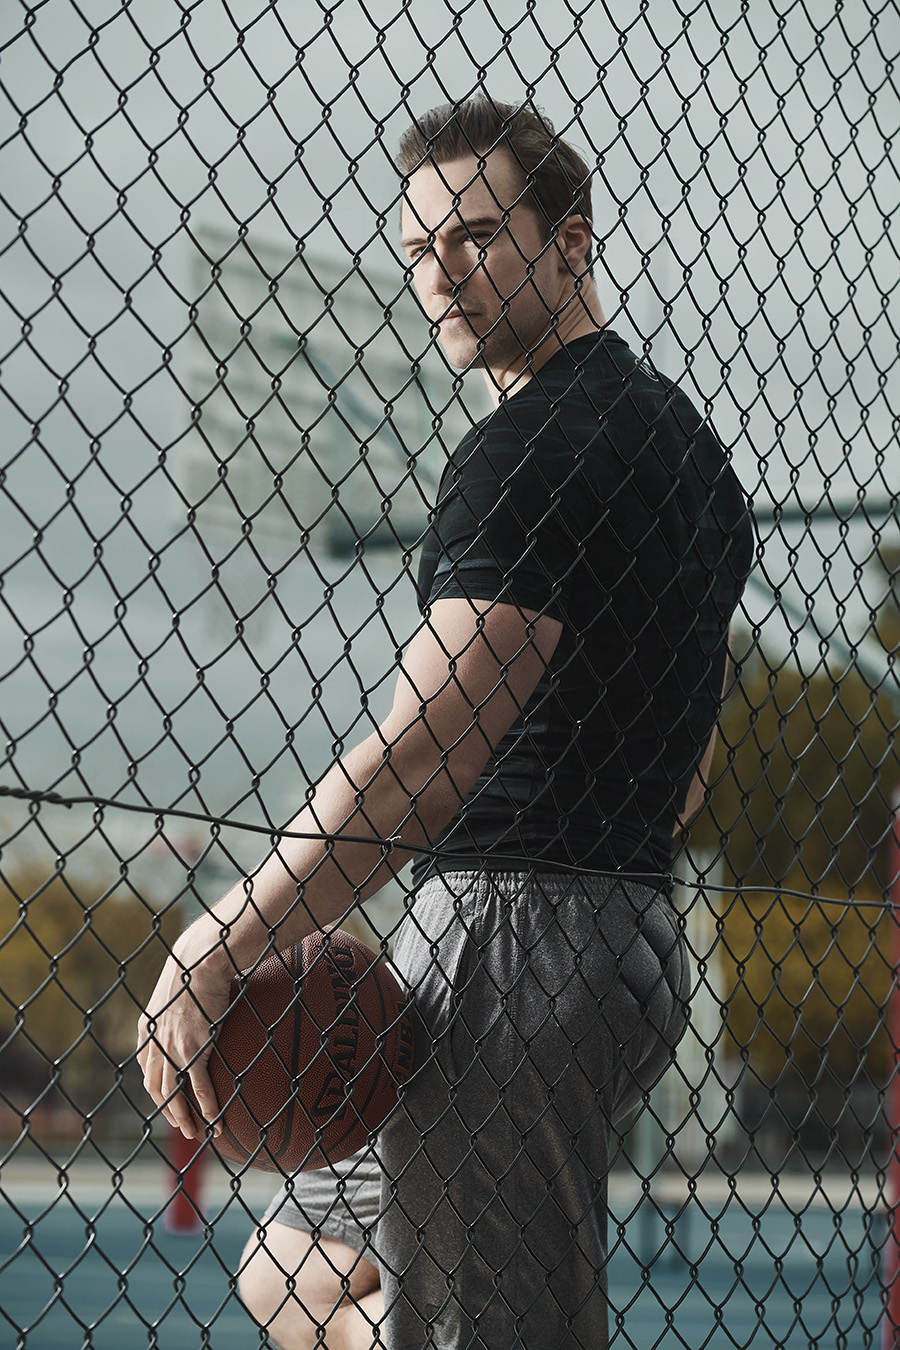 Neal standing behind wire fence on basketball court